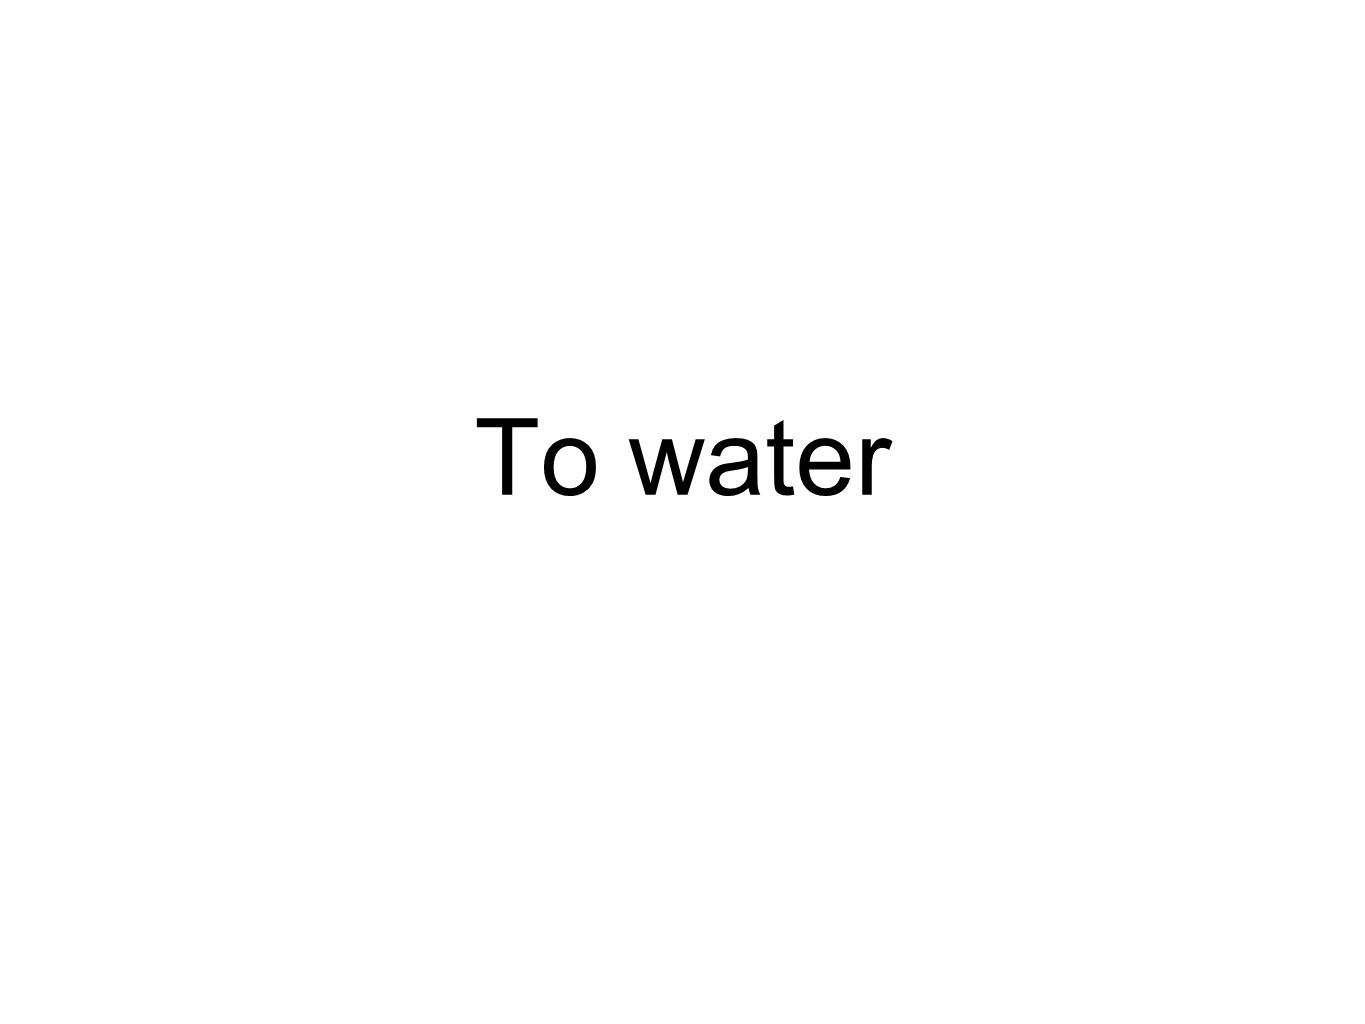 To water